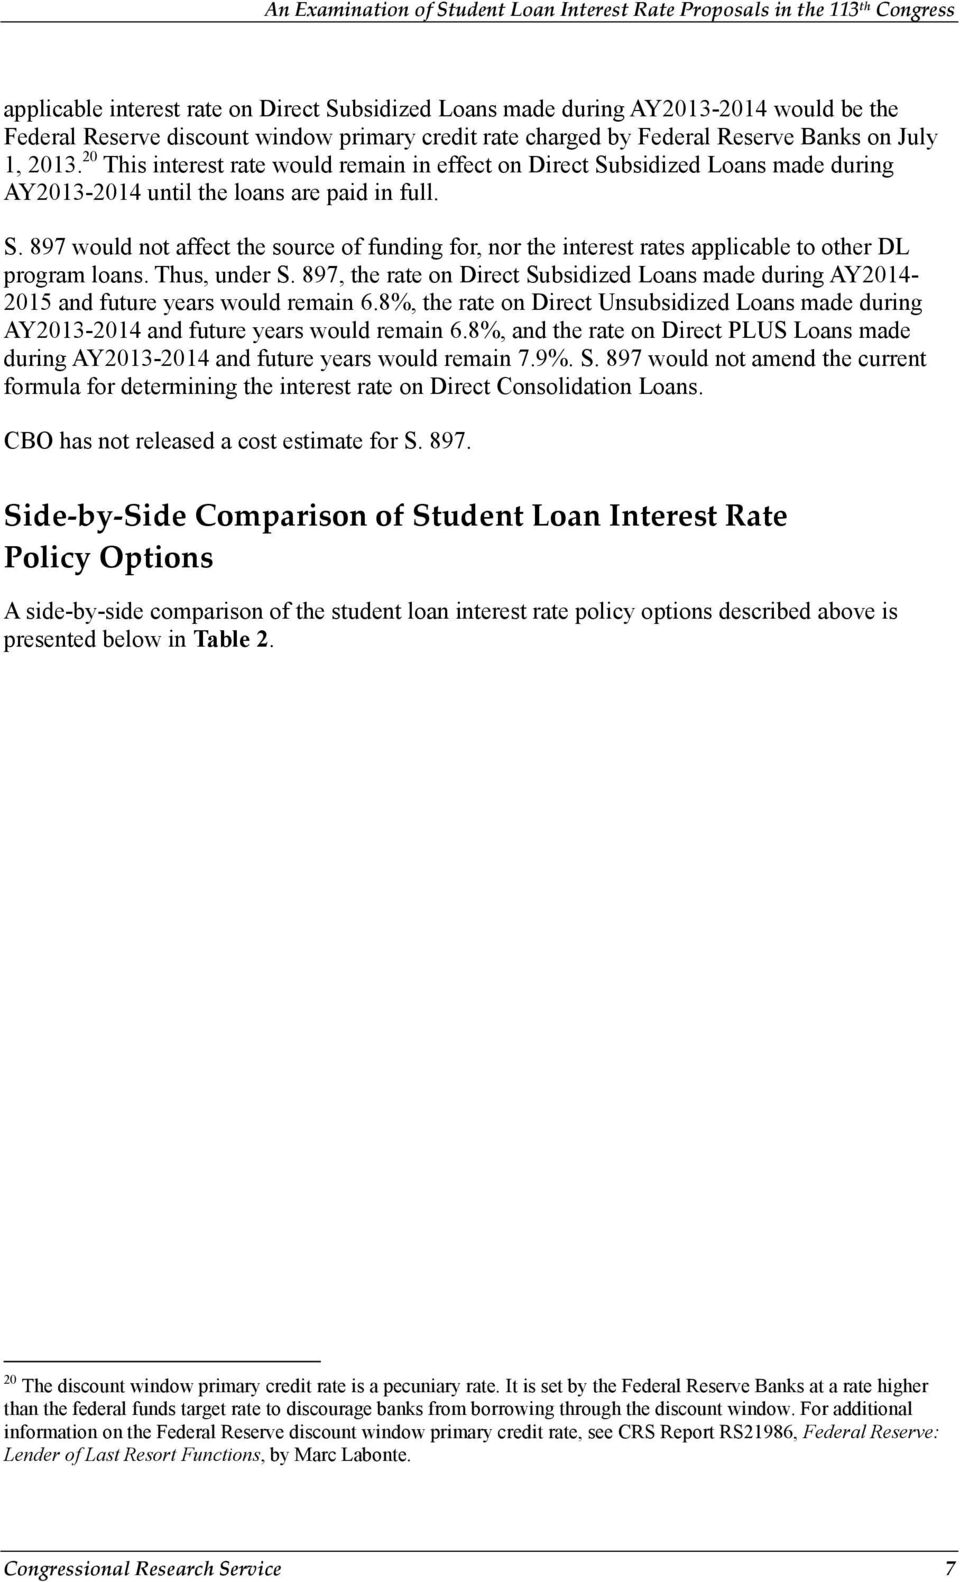 Thus, under S. 897, the rate on Direct Subsidized Loans made during AY2014-2015 and future years would remain 6.